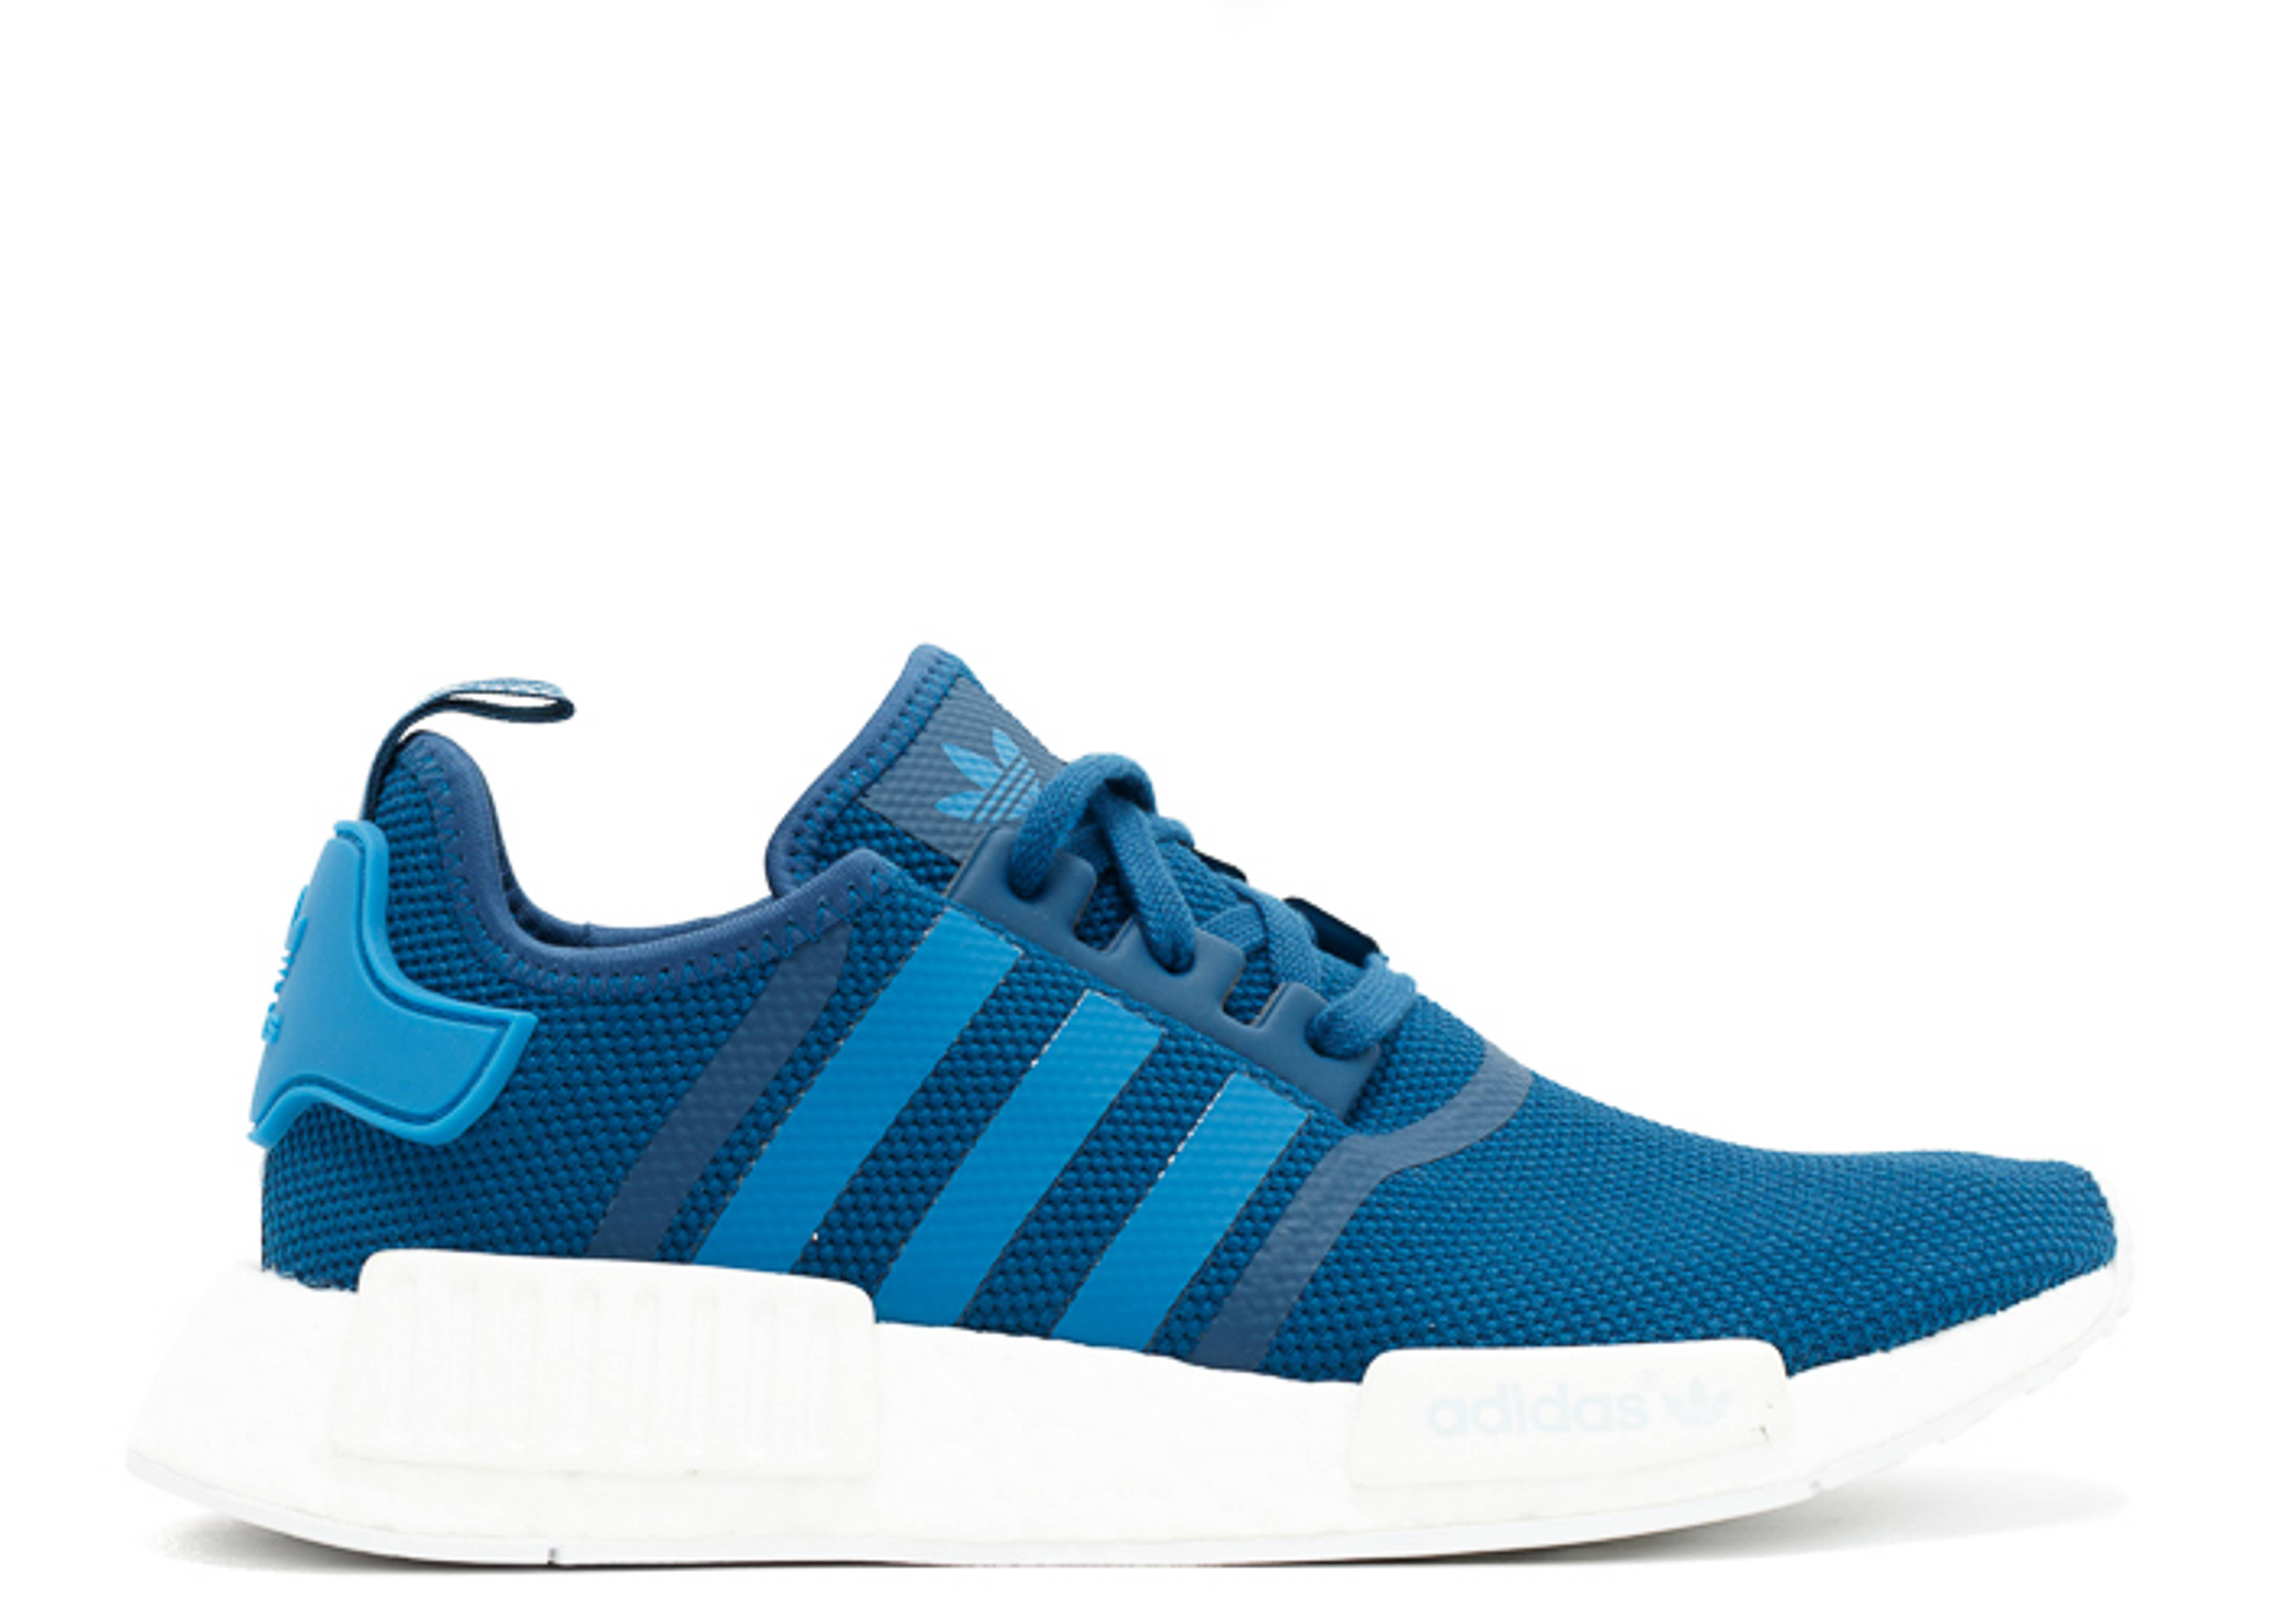 Nmd Blue White